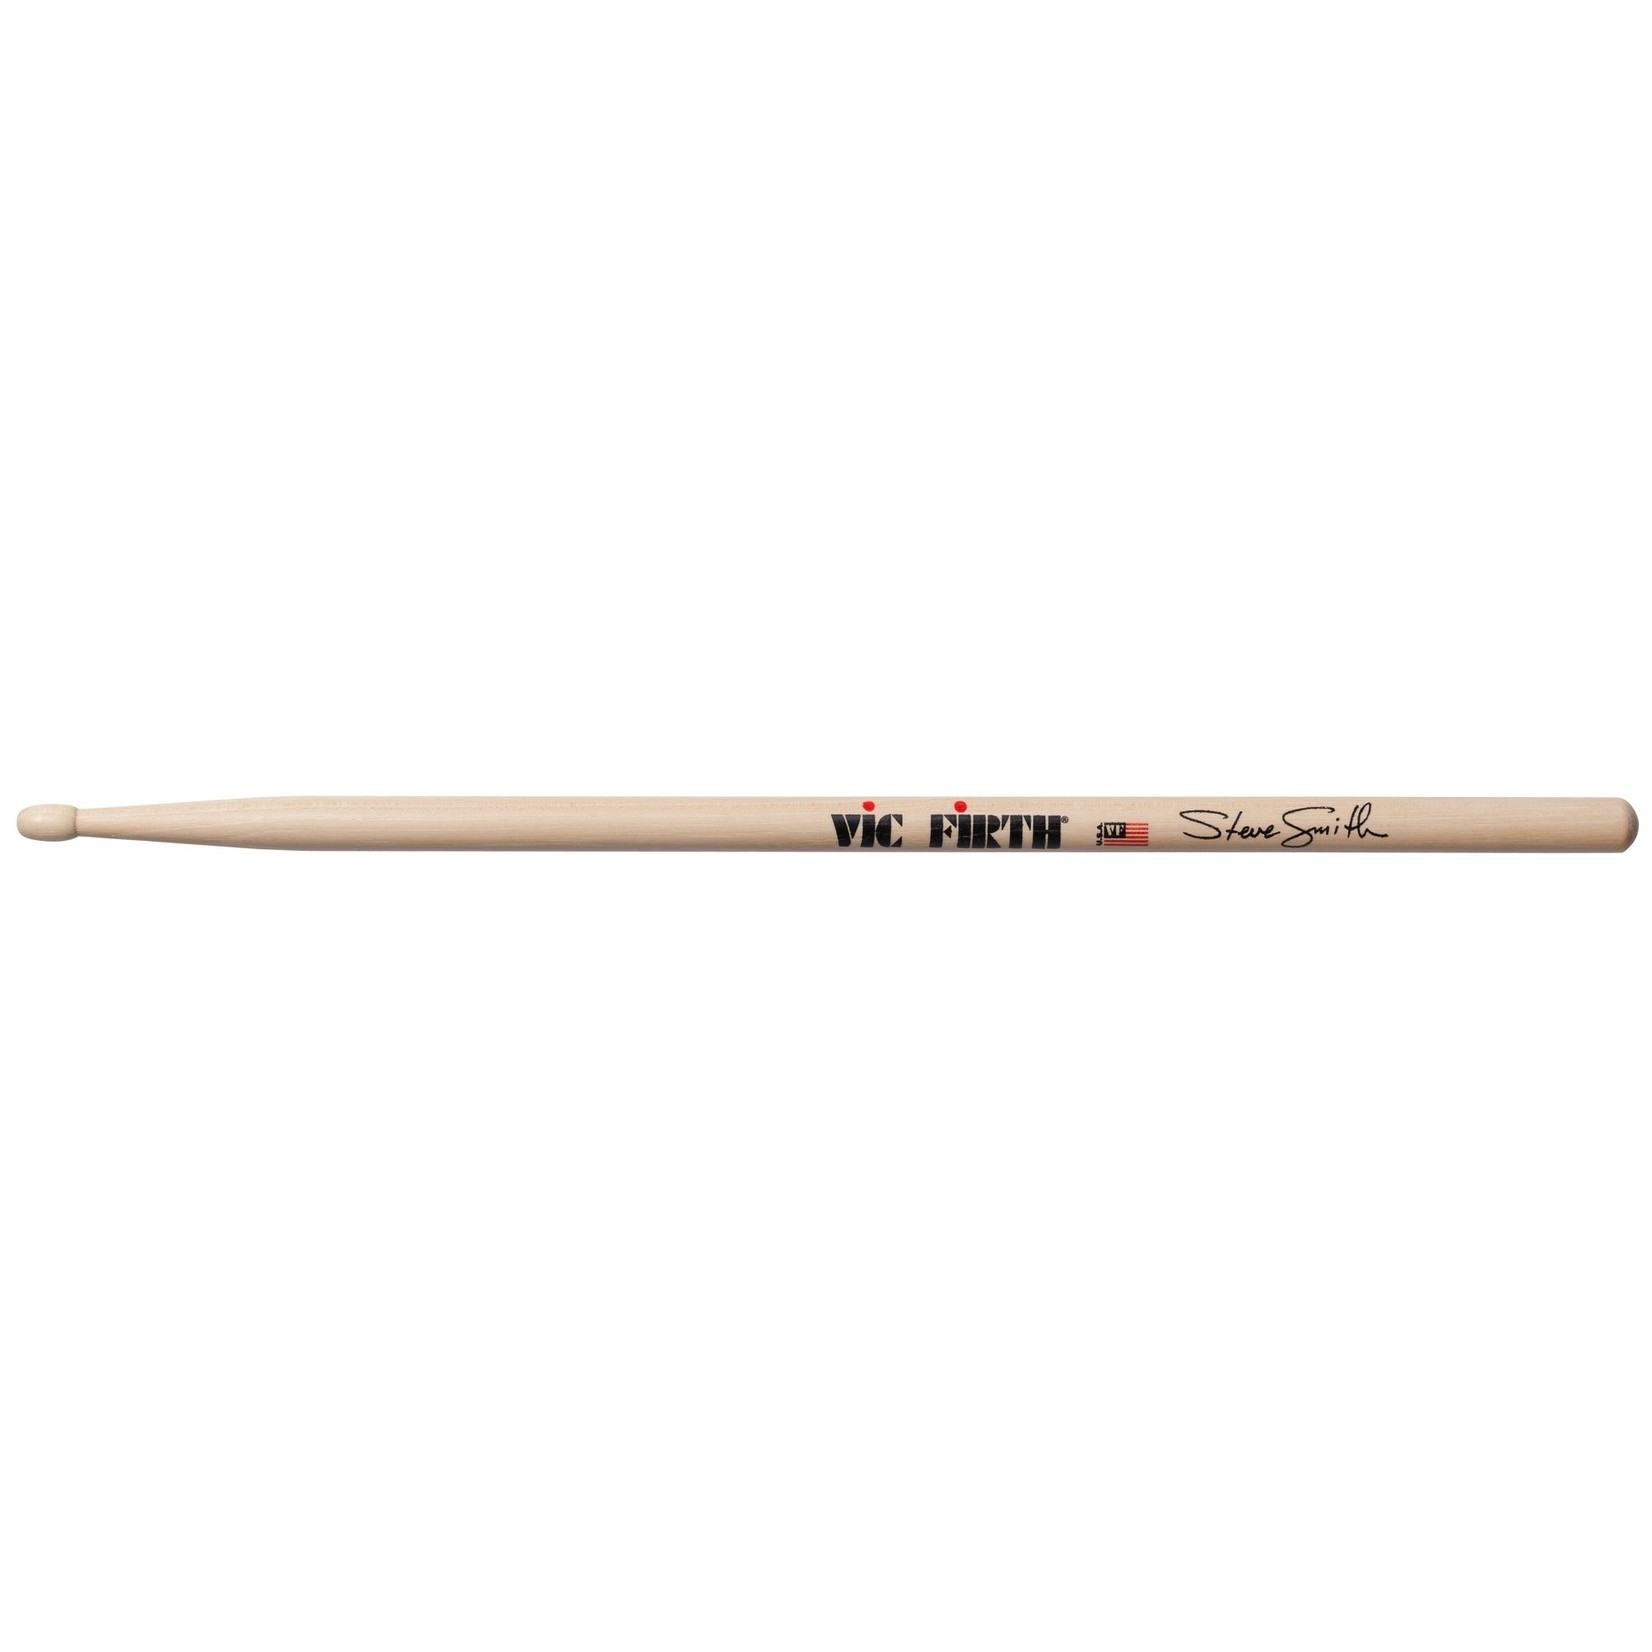 Vic Firth Vic Firth Signature Series -- Steve Smith